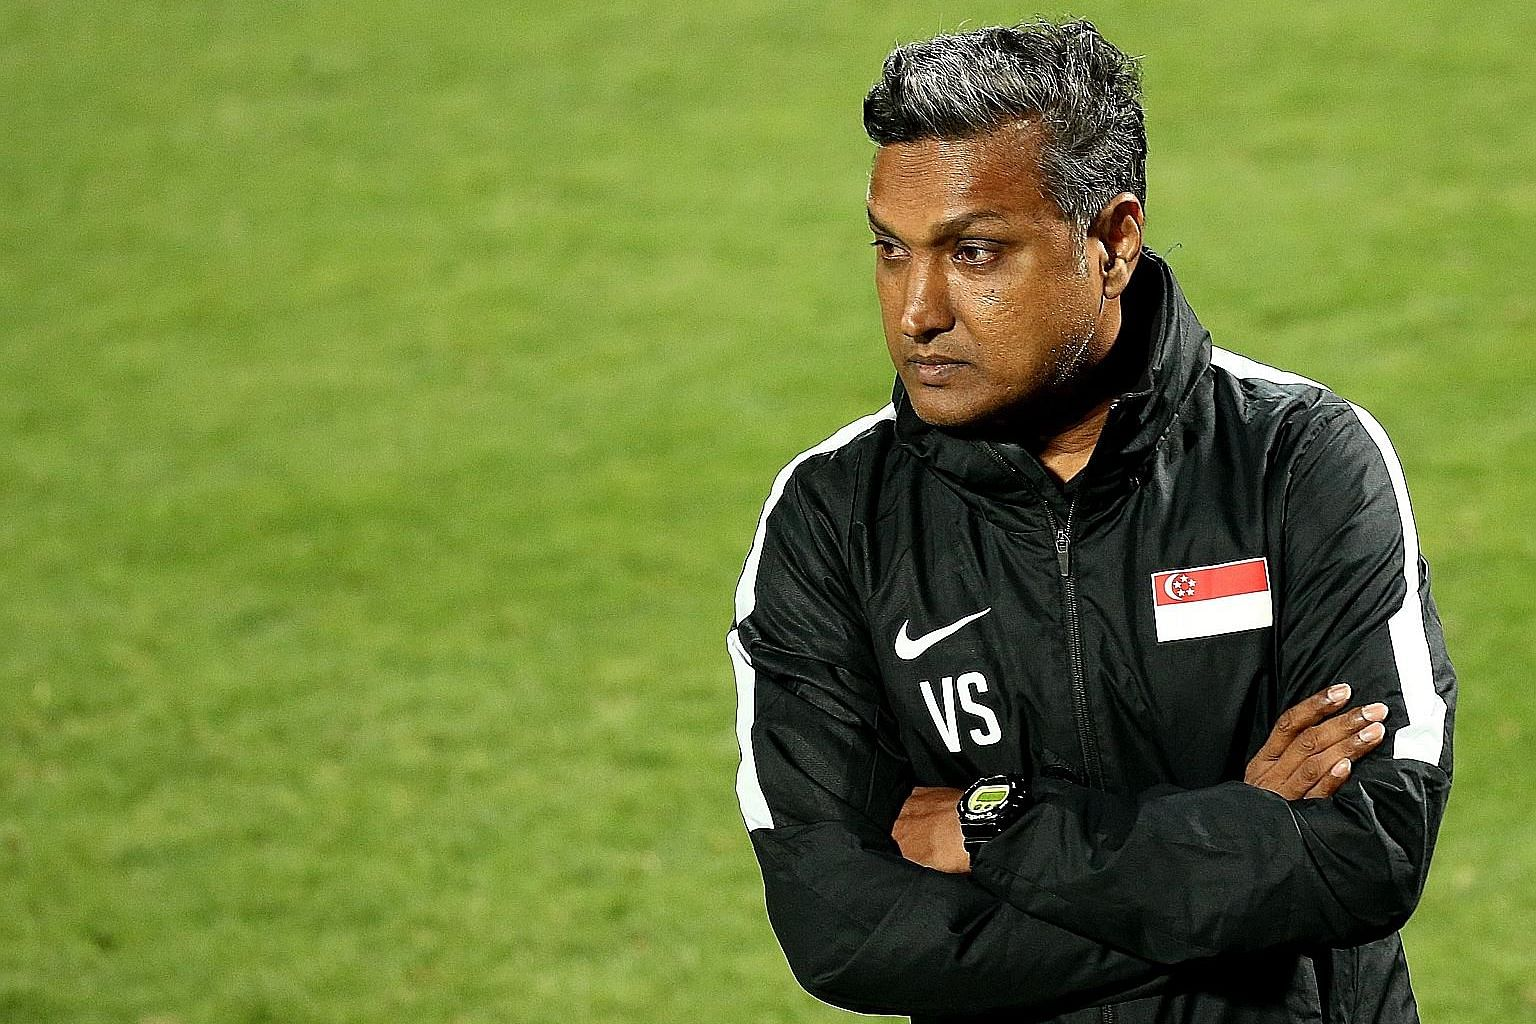 From top: Players and coaches generally felt that former Singapore coach Sundram's safety-first approach was more suited to league football, whereas goals and wins are needed in international qualification tournaments or knockout games. One of Sundra